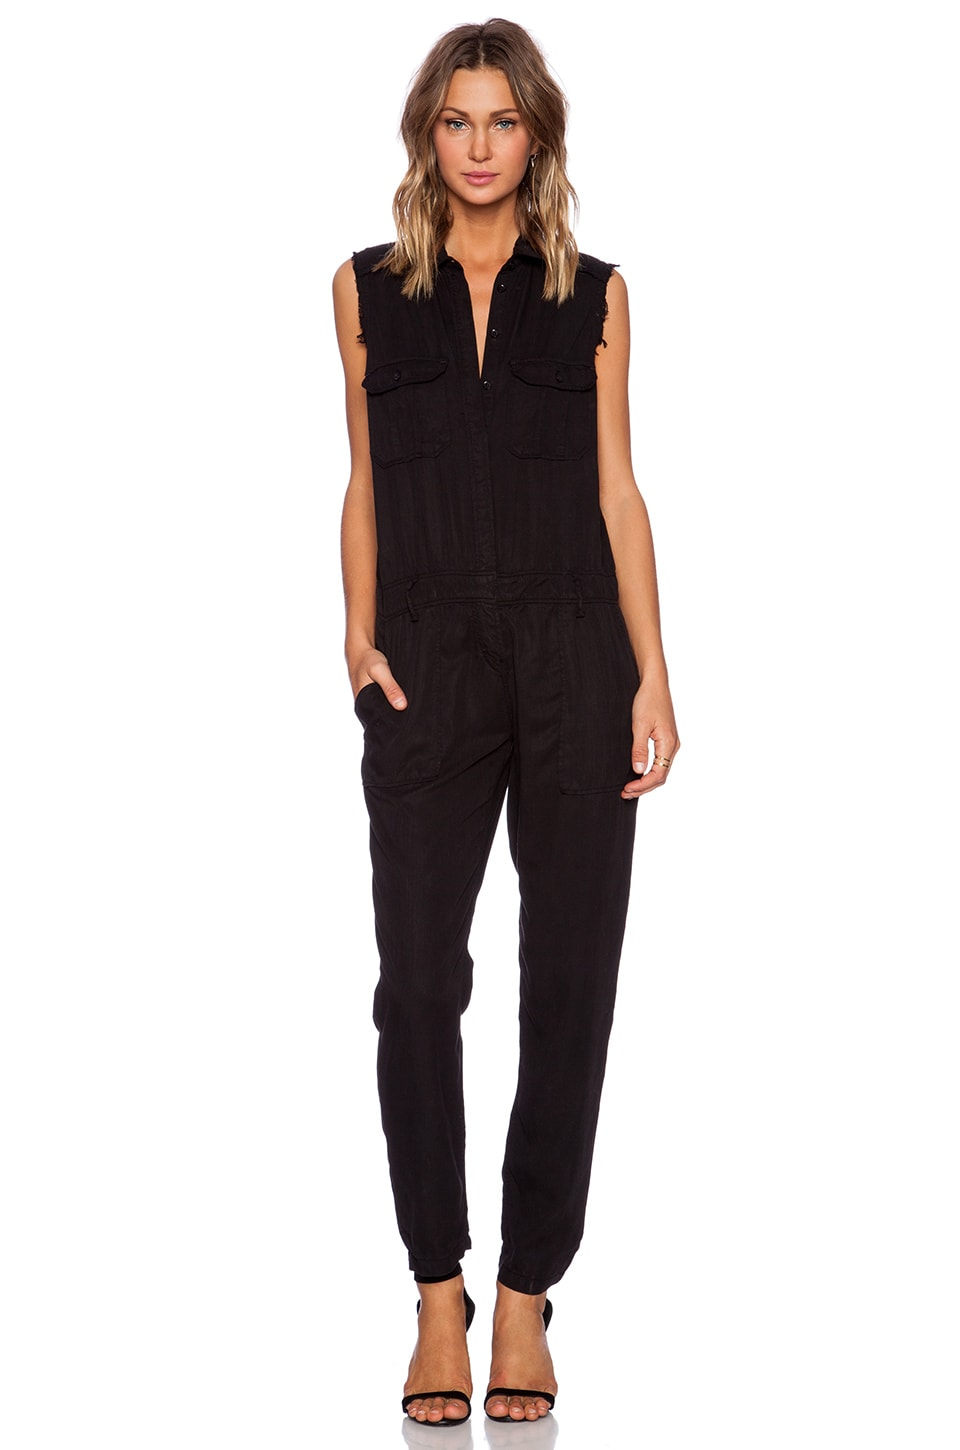 Etienne Marcel Sleeveless Jumpsuit in Black